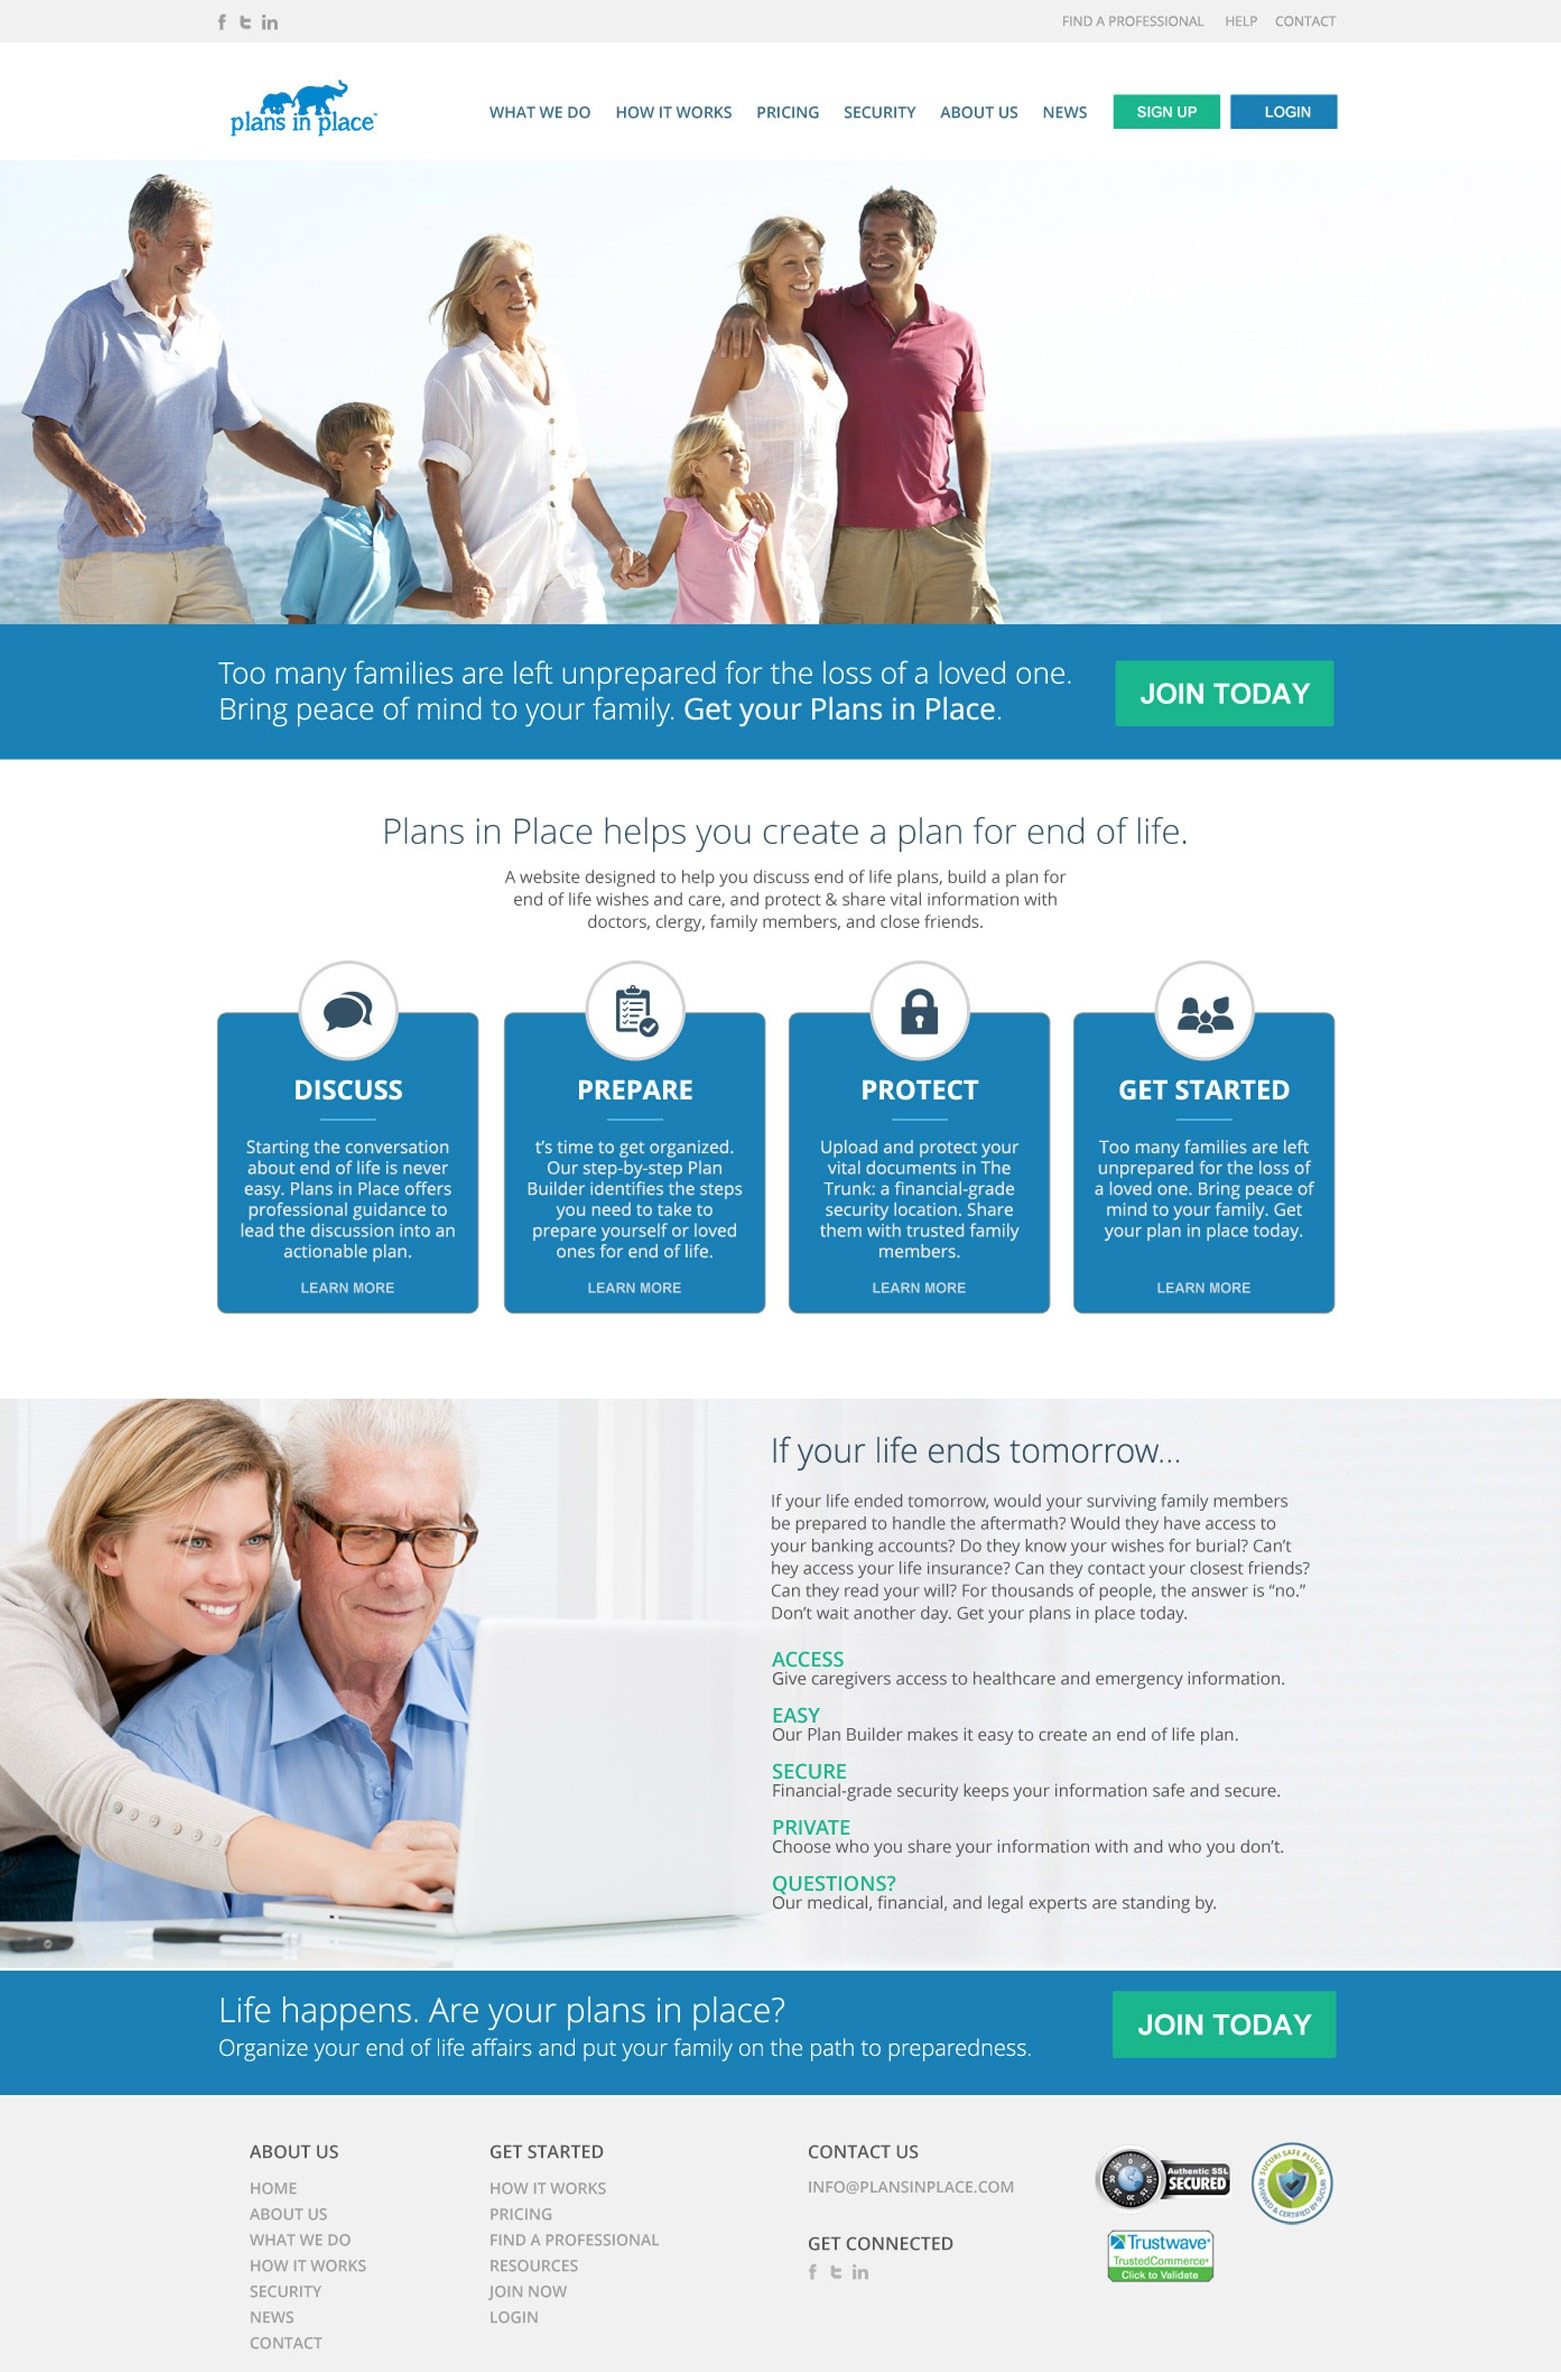 LA Angeles Estate Planning Web Design Company